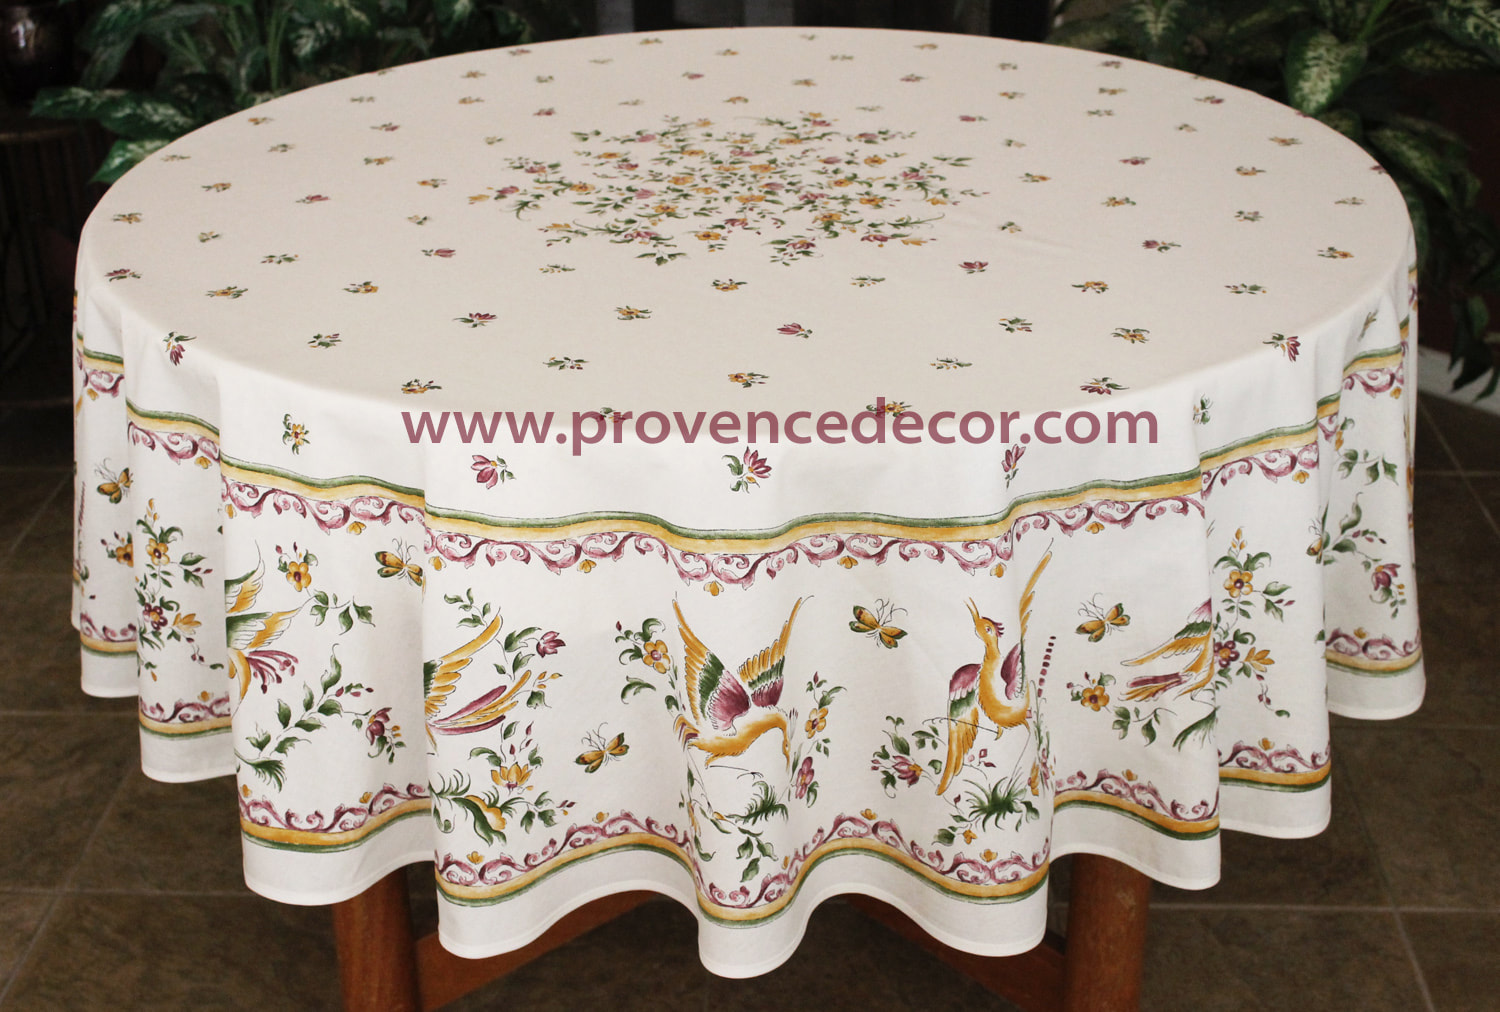 moustier burgundy acrylic cotton coated french tablecloths french oilcloth spill proof easy wipe off laminated round rectangle table cover indoor